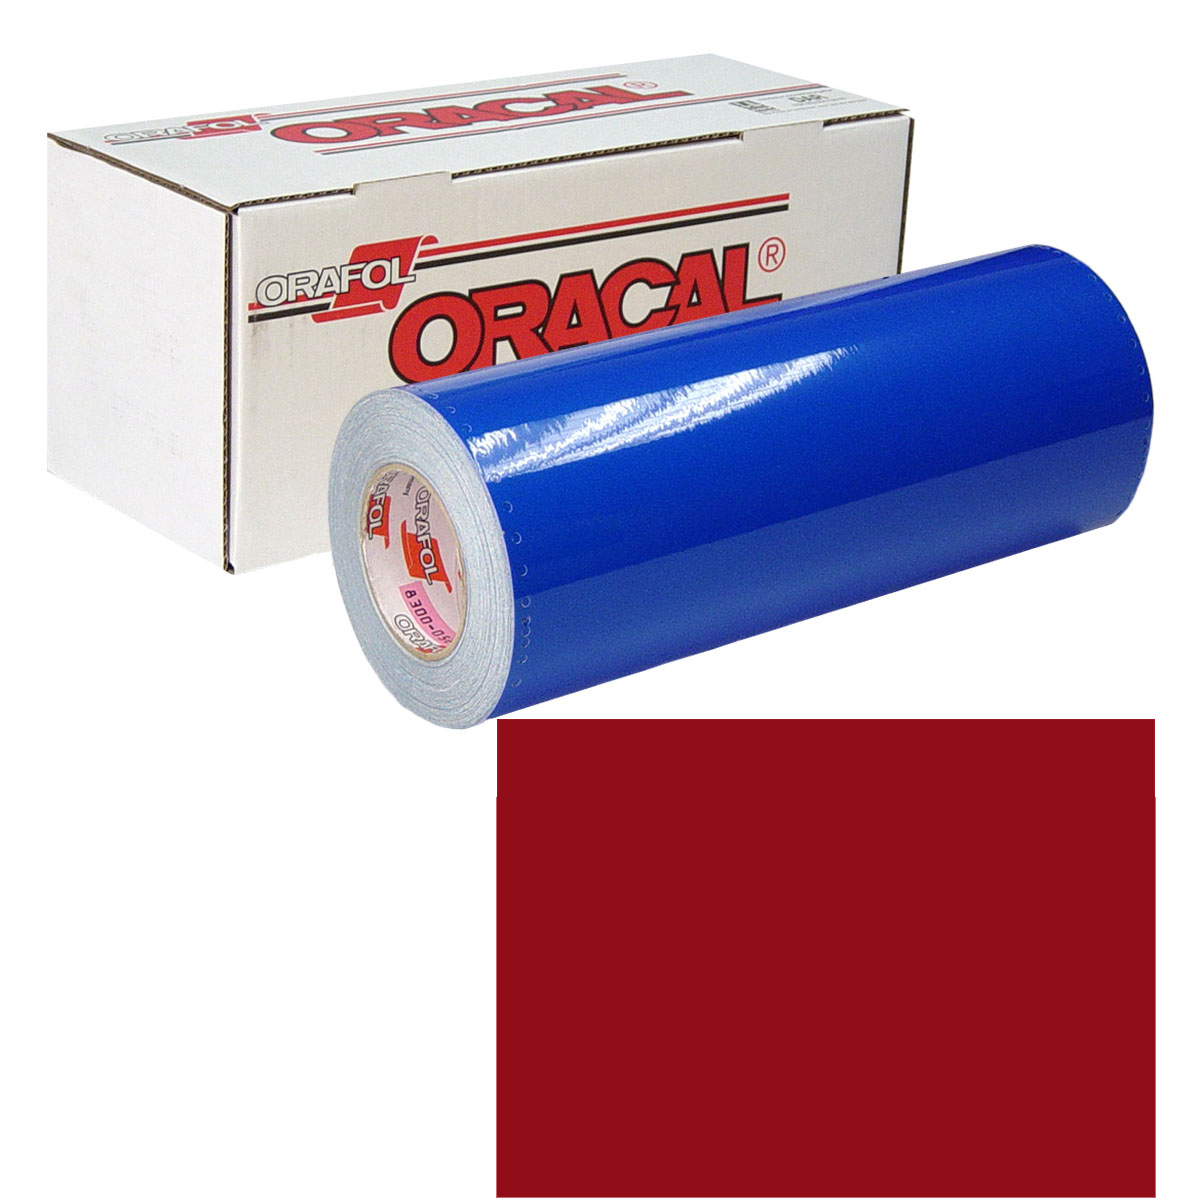 ORACAL 631 Unp 30in X 50yd 030 Dark Red